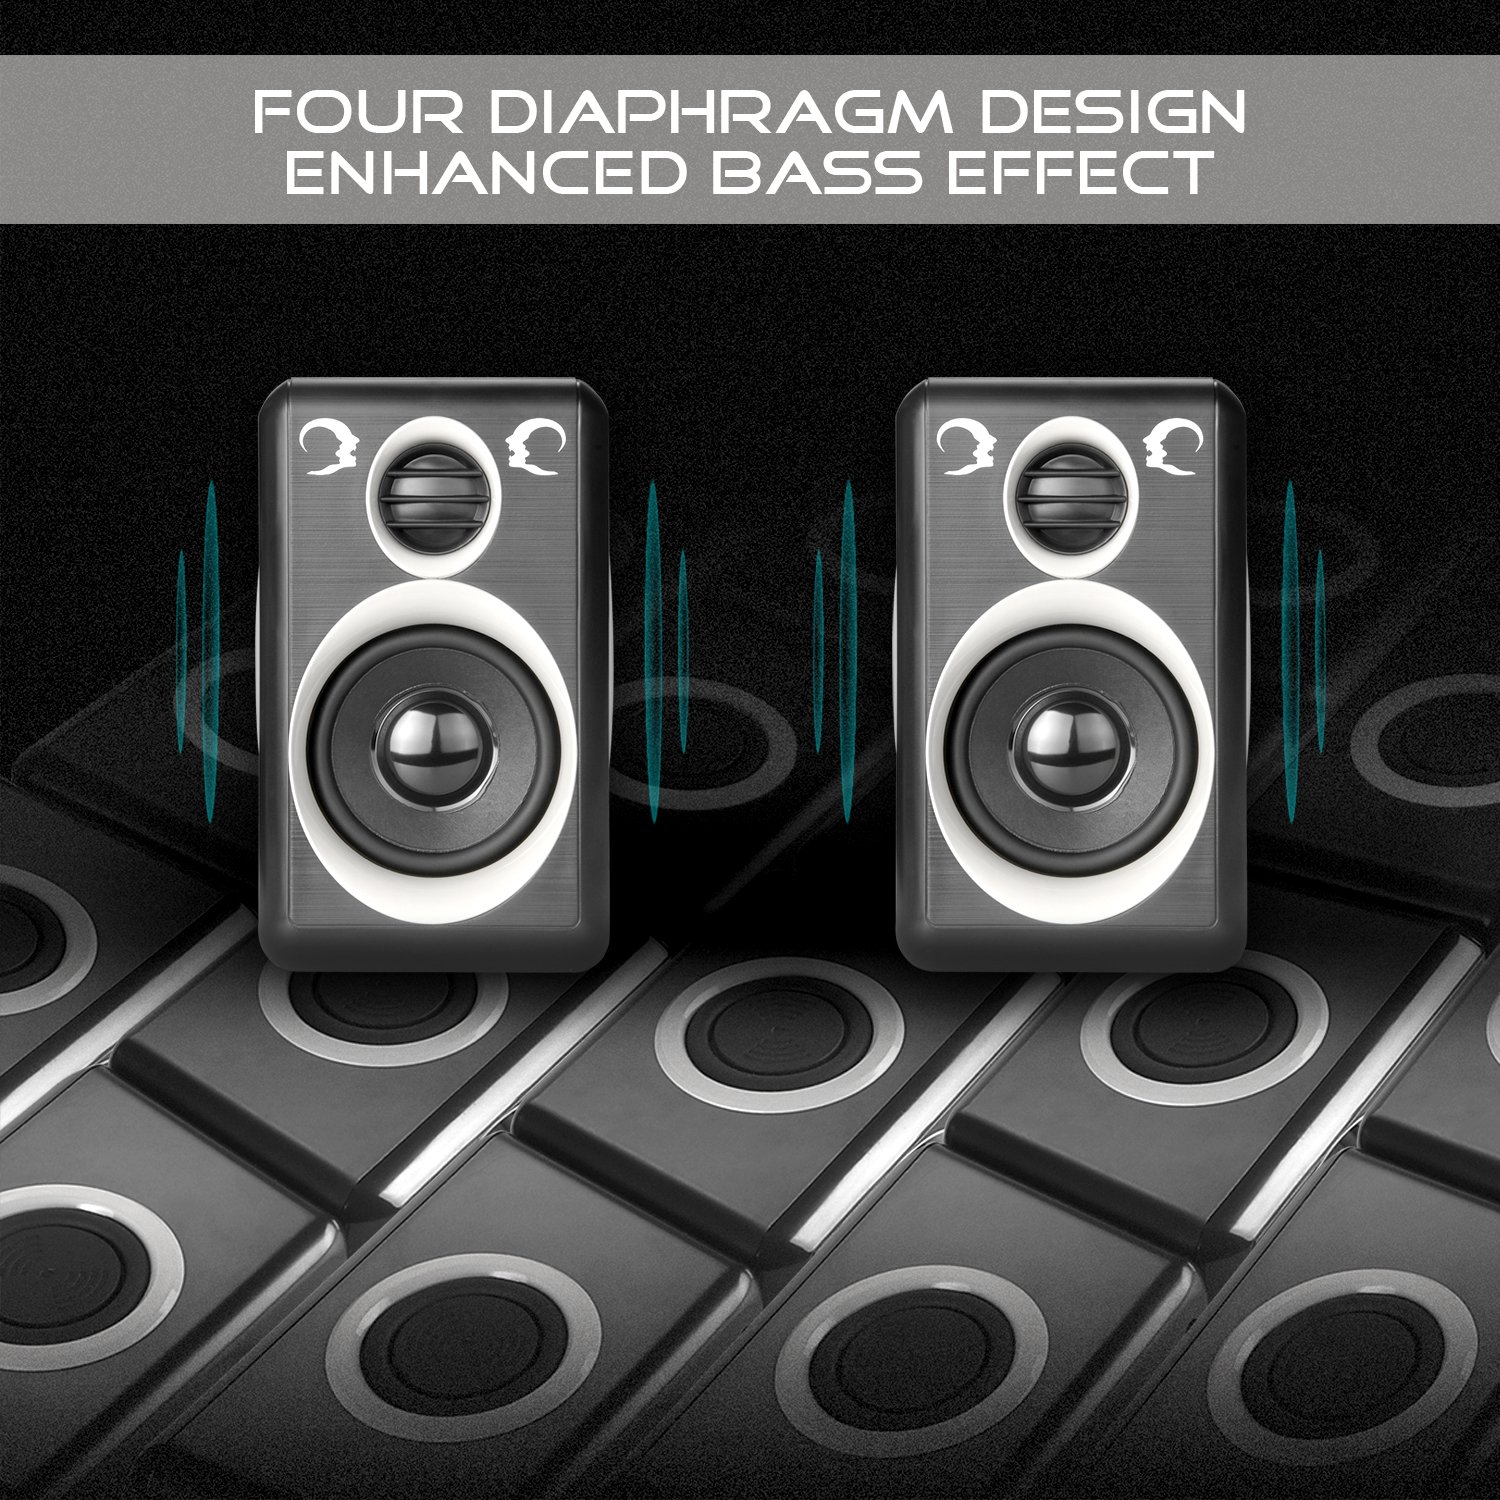 Computer Speakers With Surround Sound 2.0CH USB Wired Powered Multimedia Speaker for Desktop/TV/PC/Laptops/Smart Phone RECCAZR Built-in Four Loudspeaker Diaphragm (Gray) by RECCAZR (Image #3)